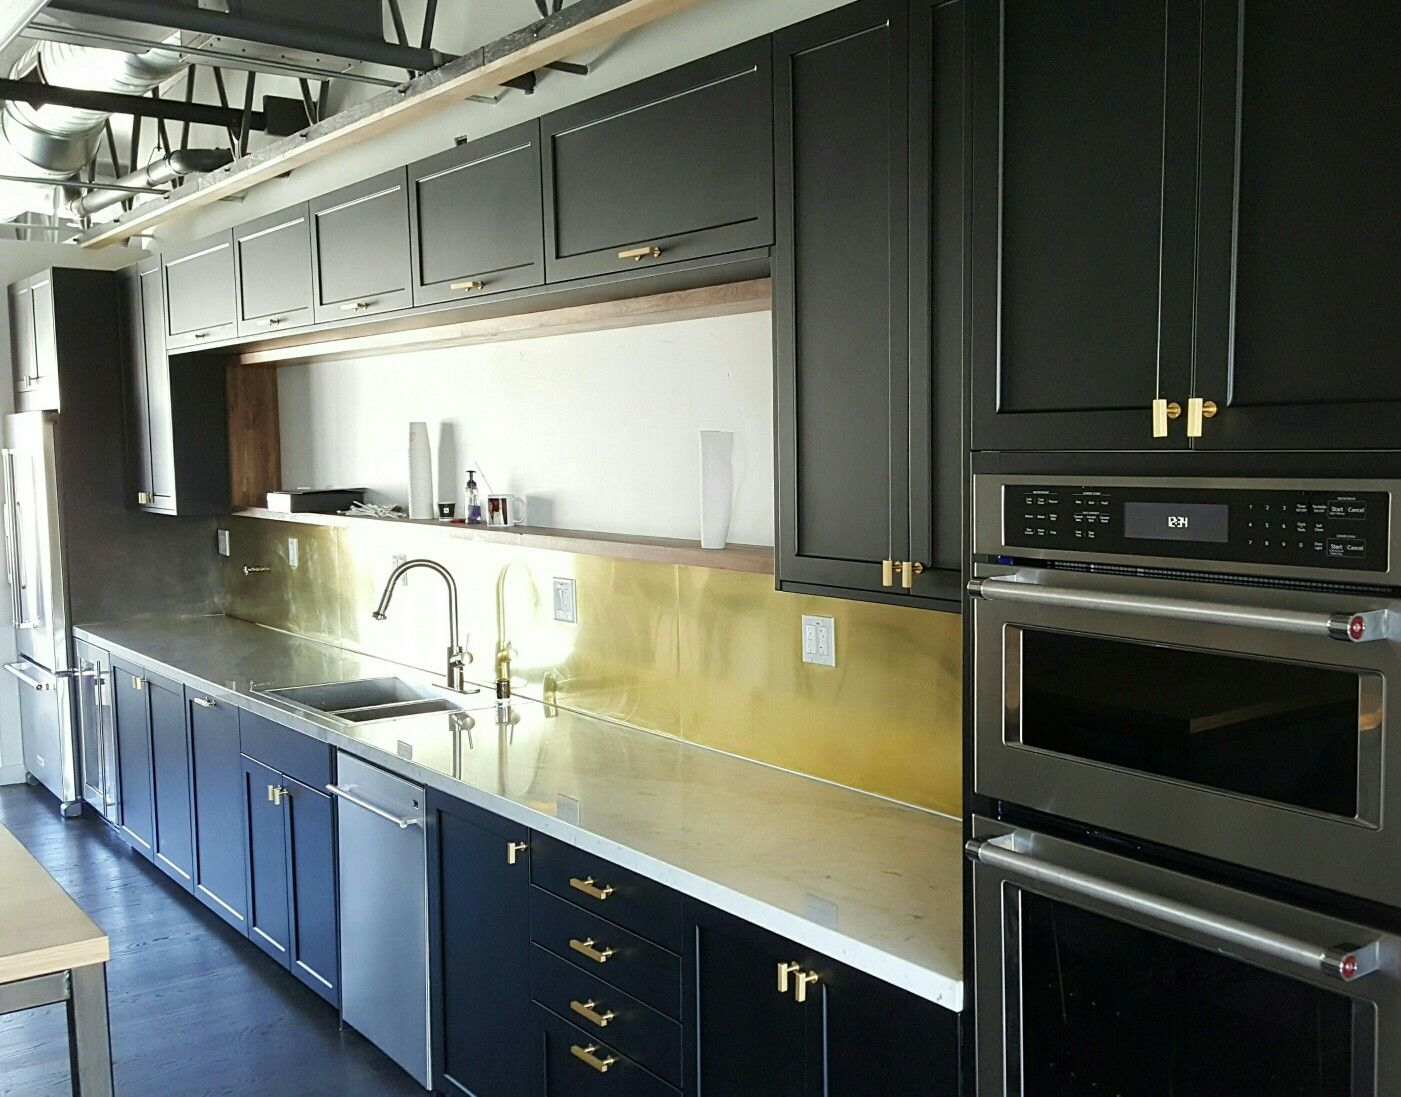 Custom Doors For Ikea Kitchen Cabinets Semihandmade Supermatte Black Doors For Ikea Kitchen